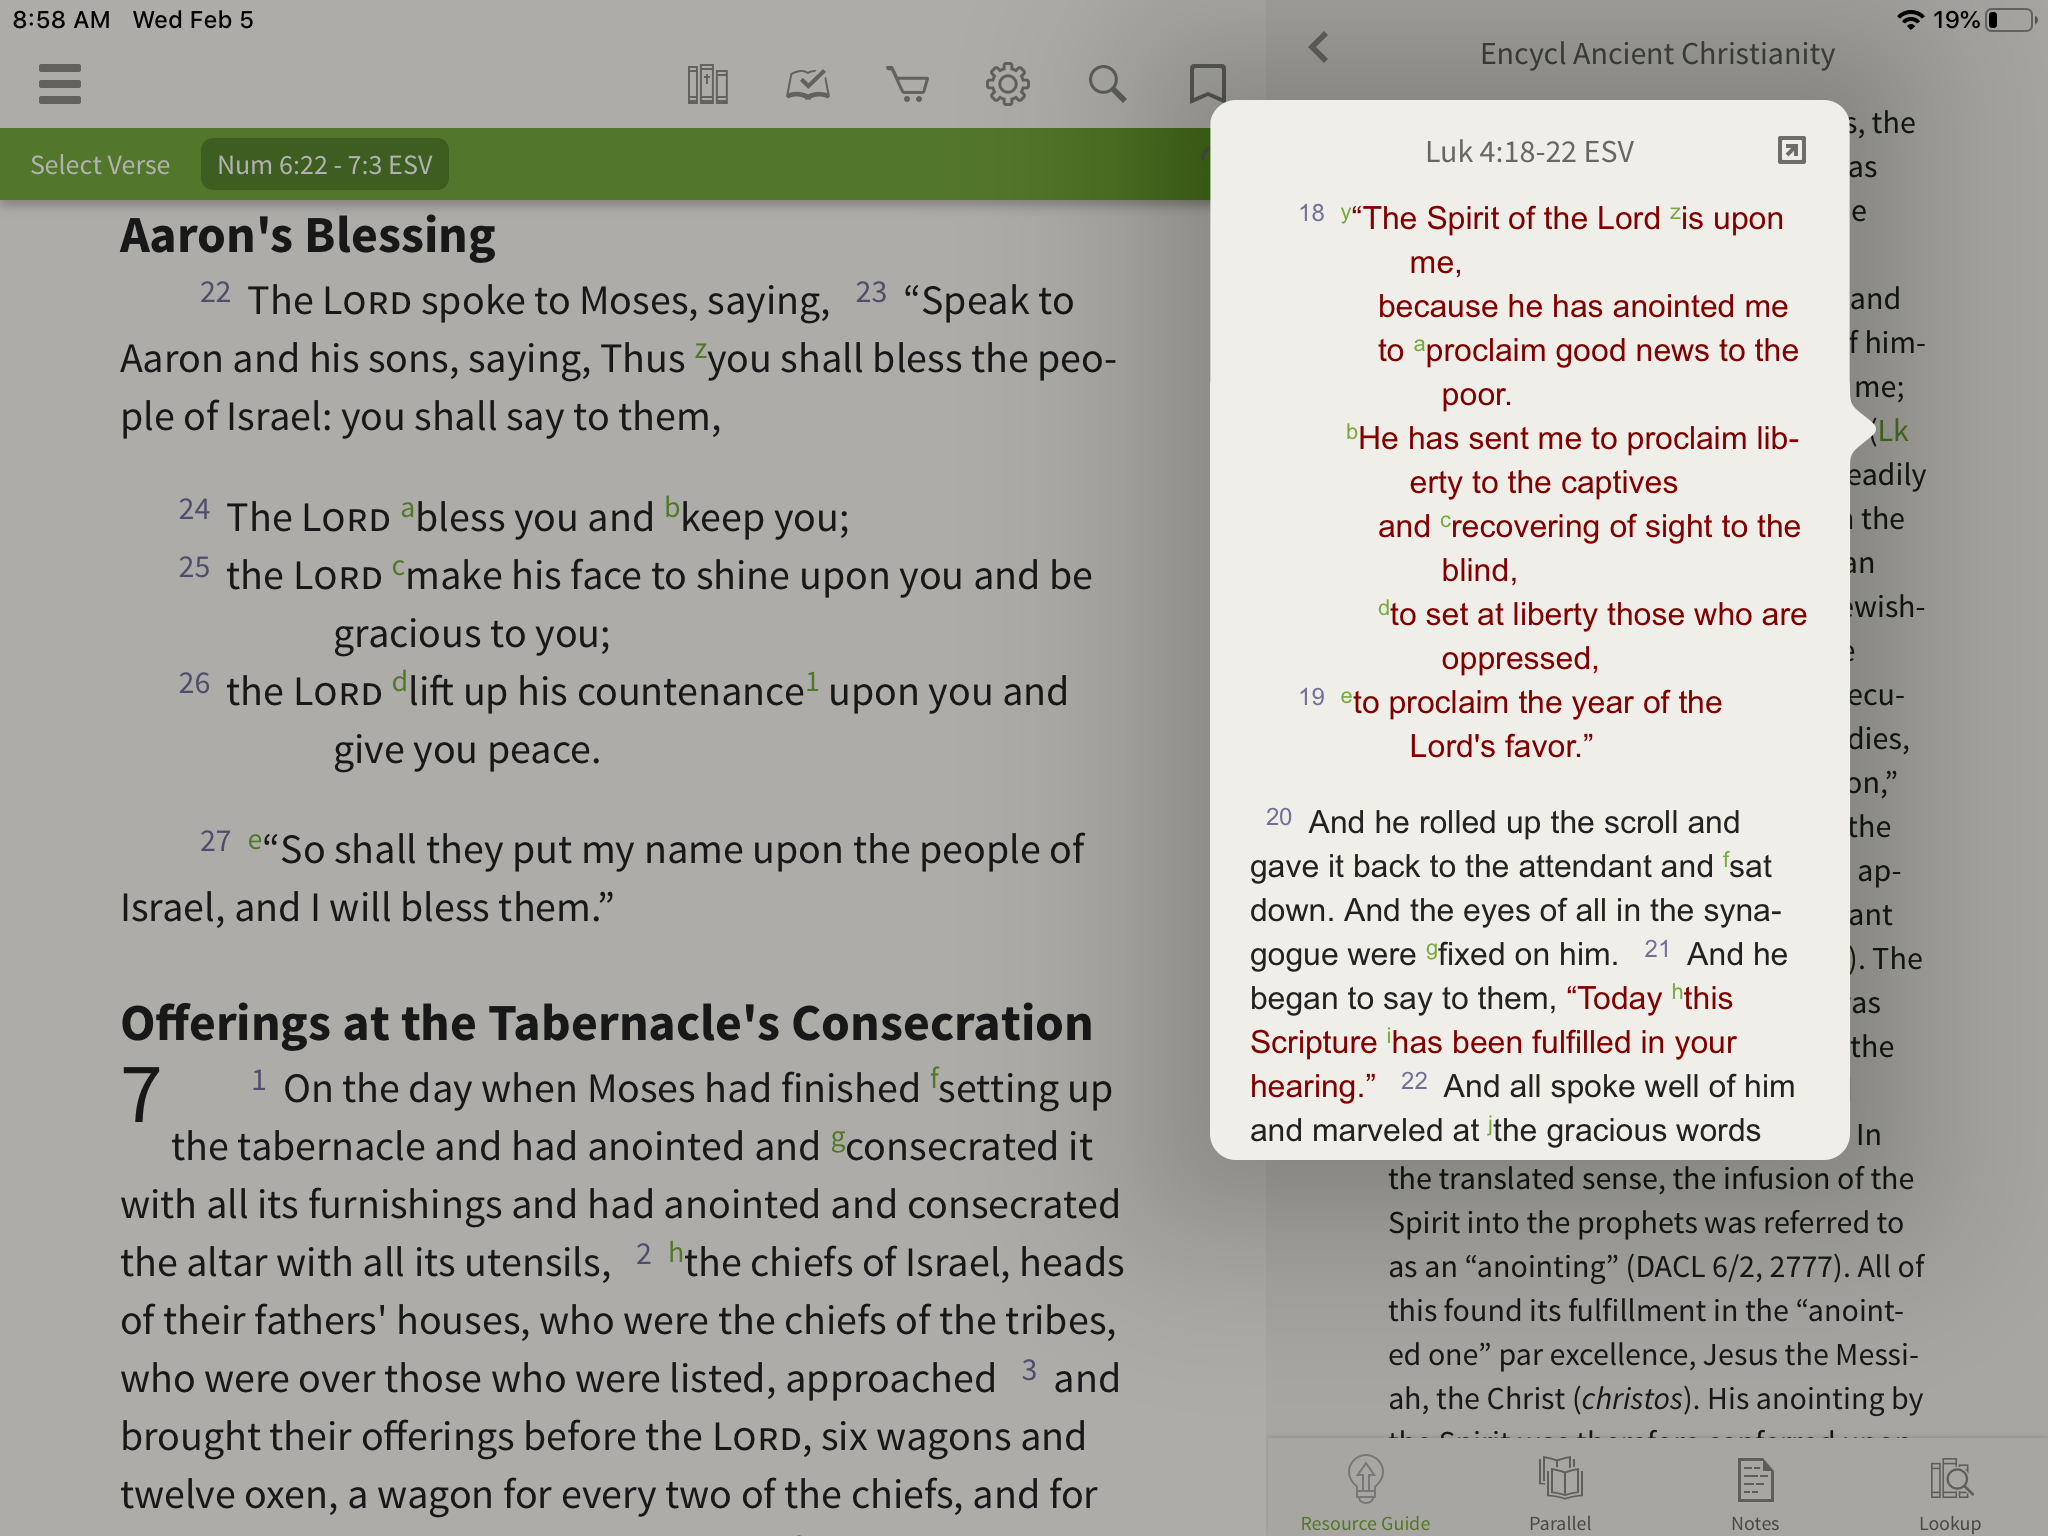 App open to Encyclopedia of Ancient Christianity with pop-up window containing verse reference